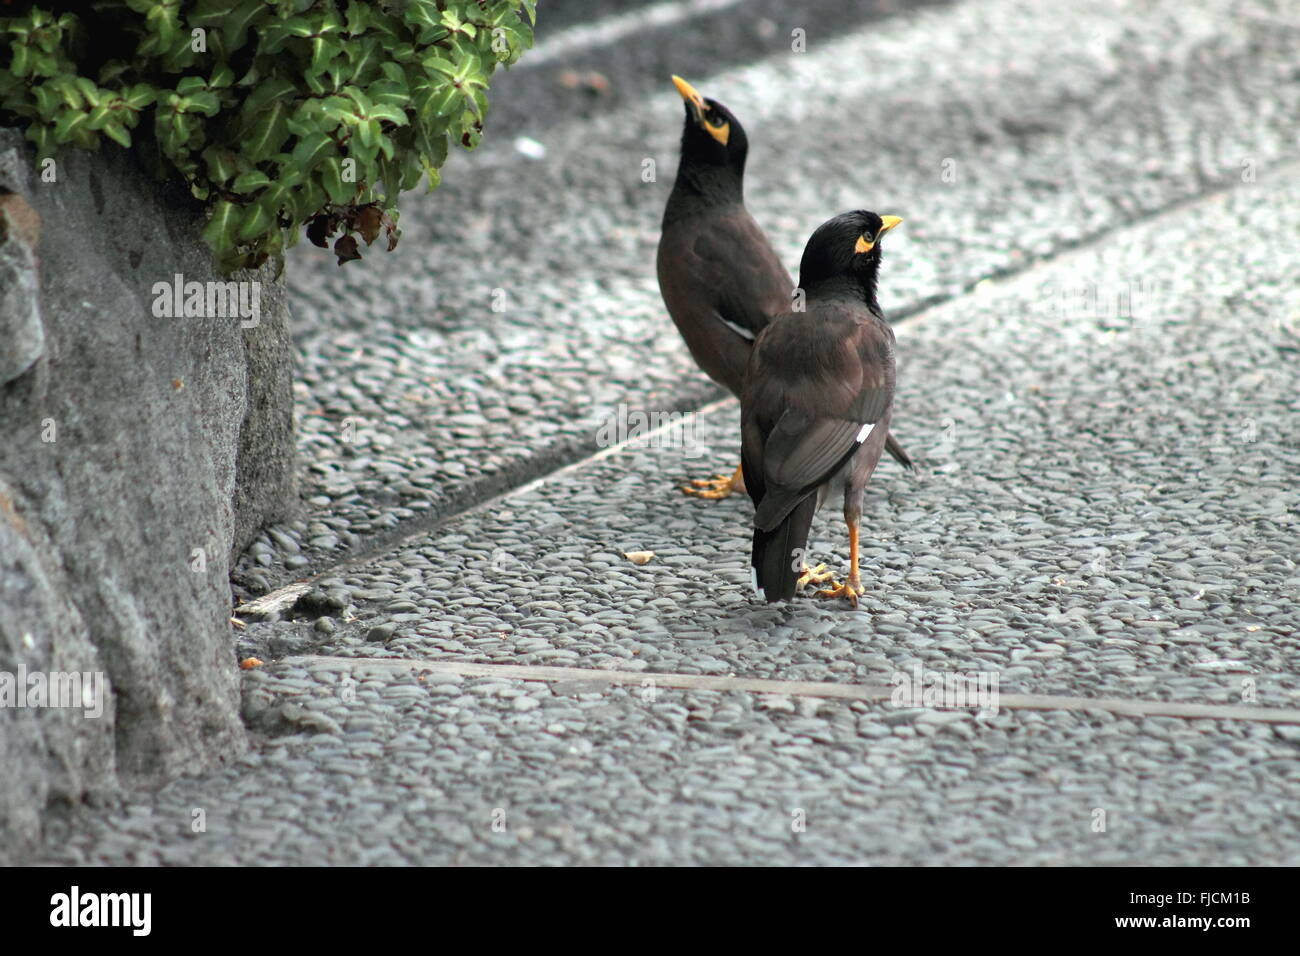 A Pair of Common Myna Birds - Stock Image